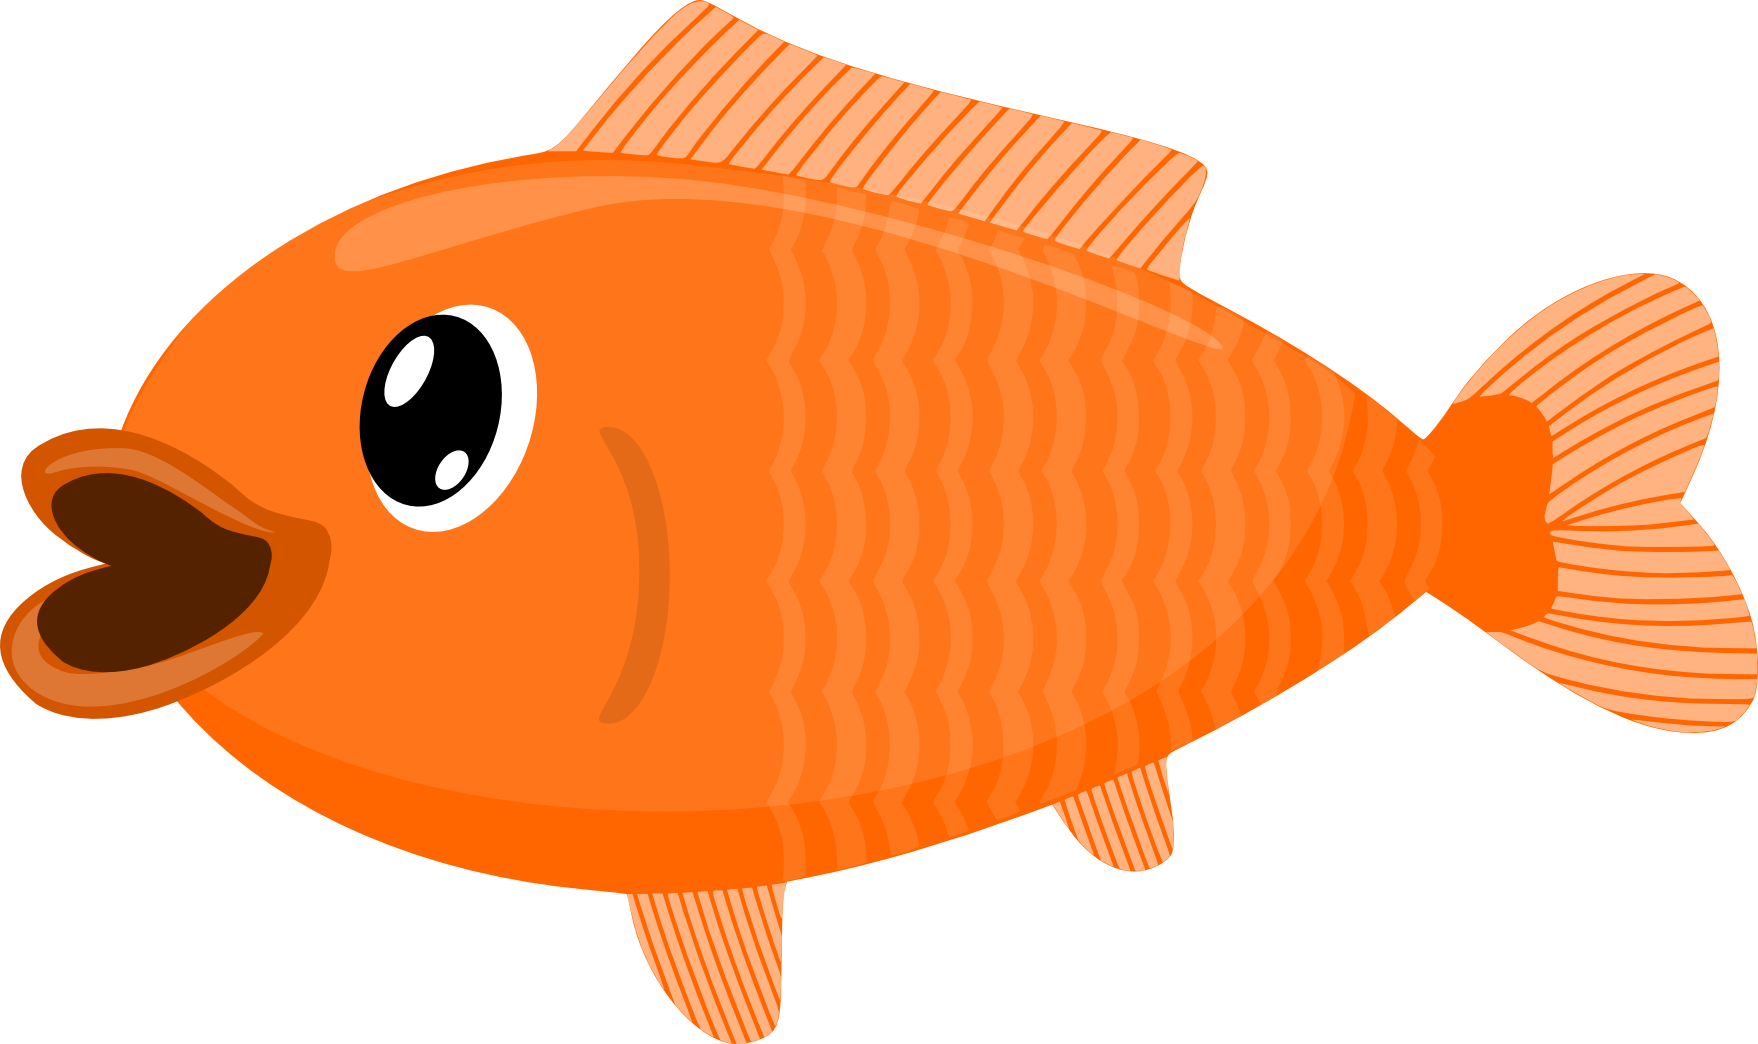 Koi at getdrawings com. Clipart fish